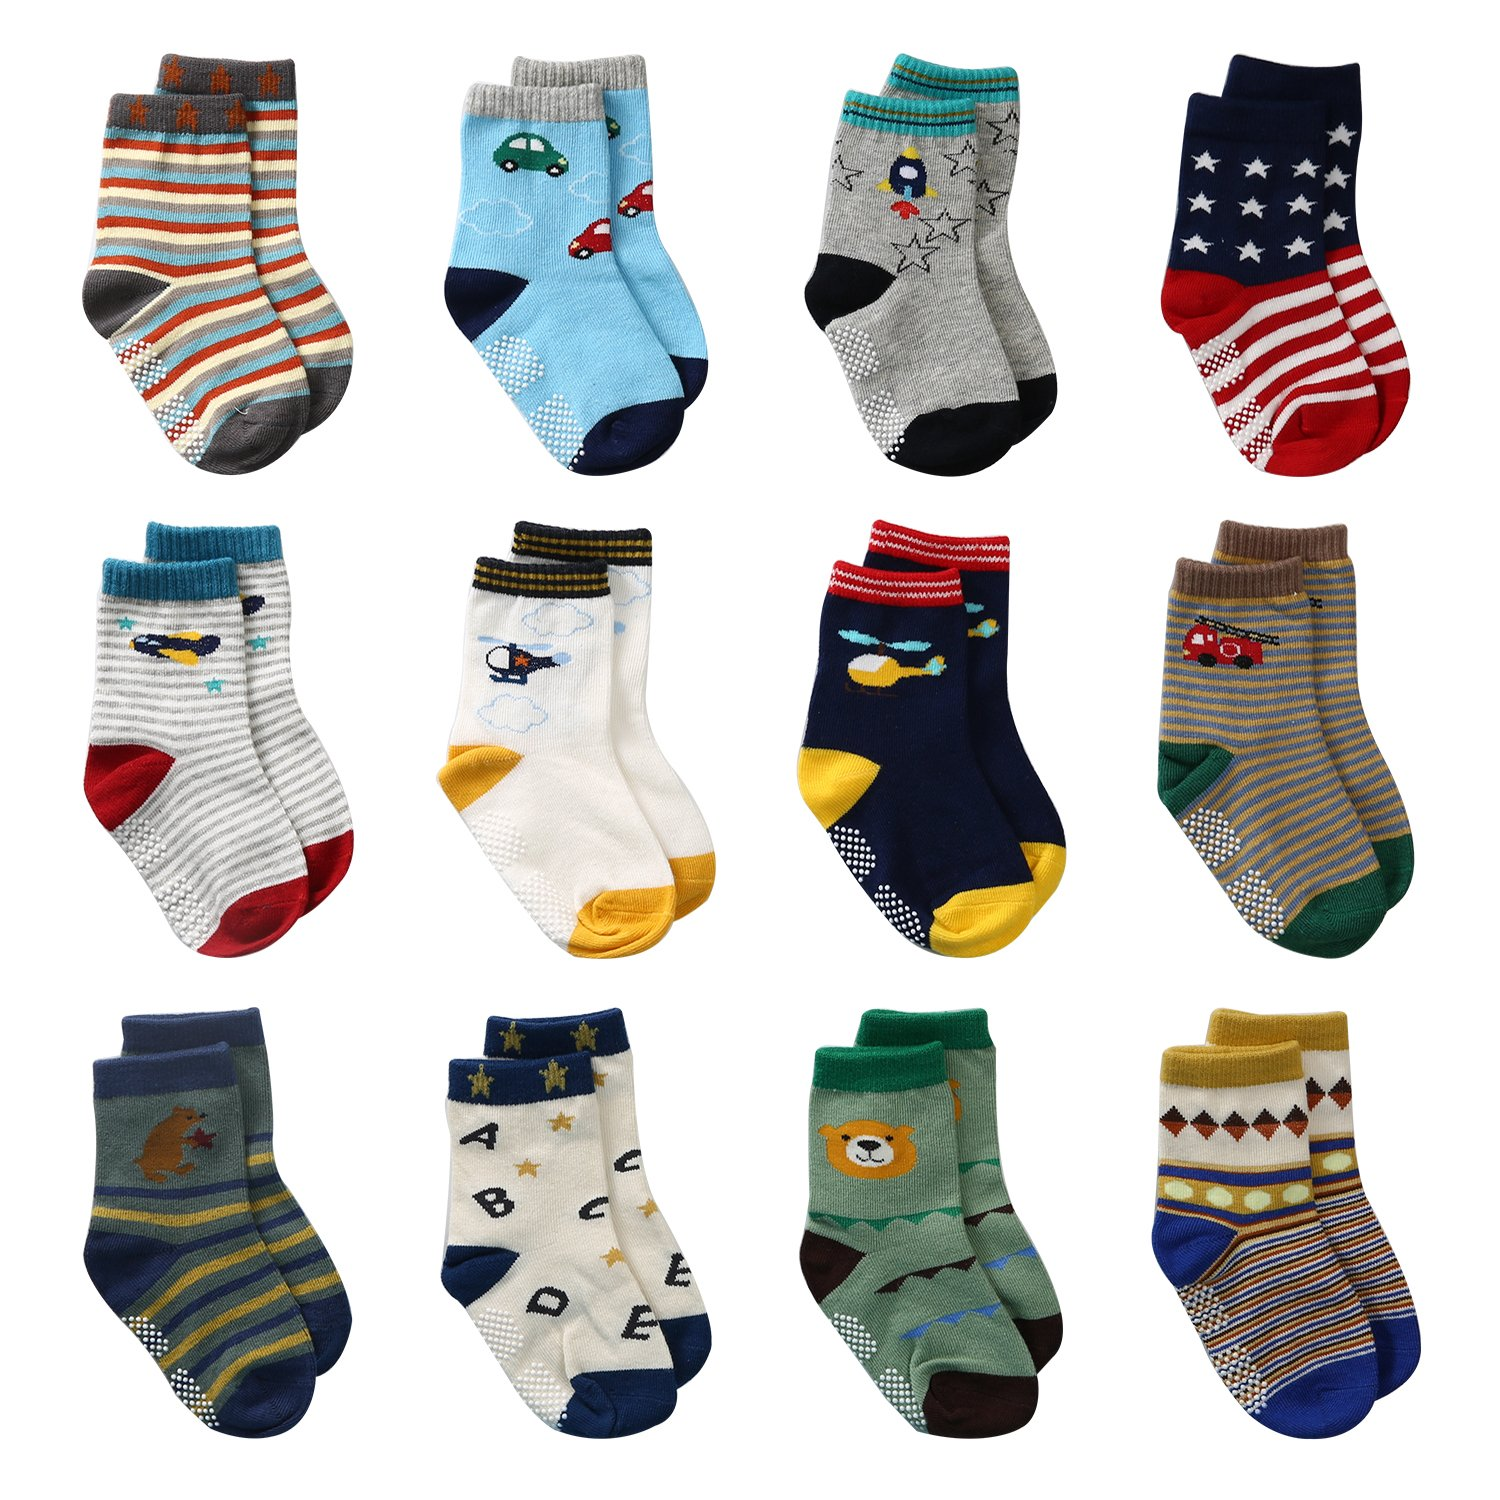 LAISOR 12 Pairs Assorted Non-Skid Ankle Cotton Socks with Grip For Kids Toddlers Baby LA711715